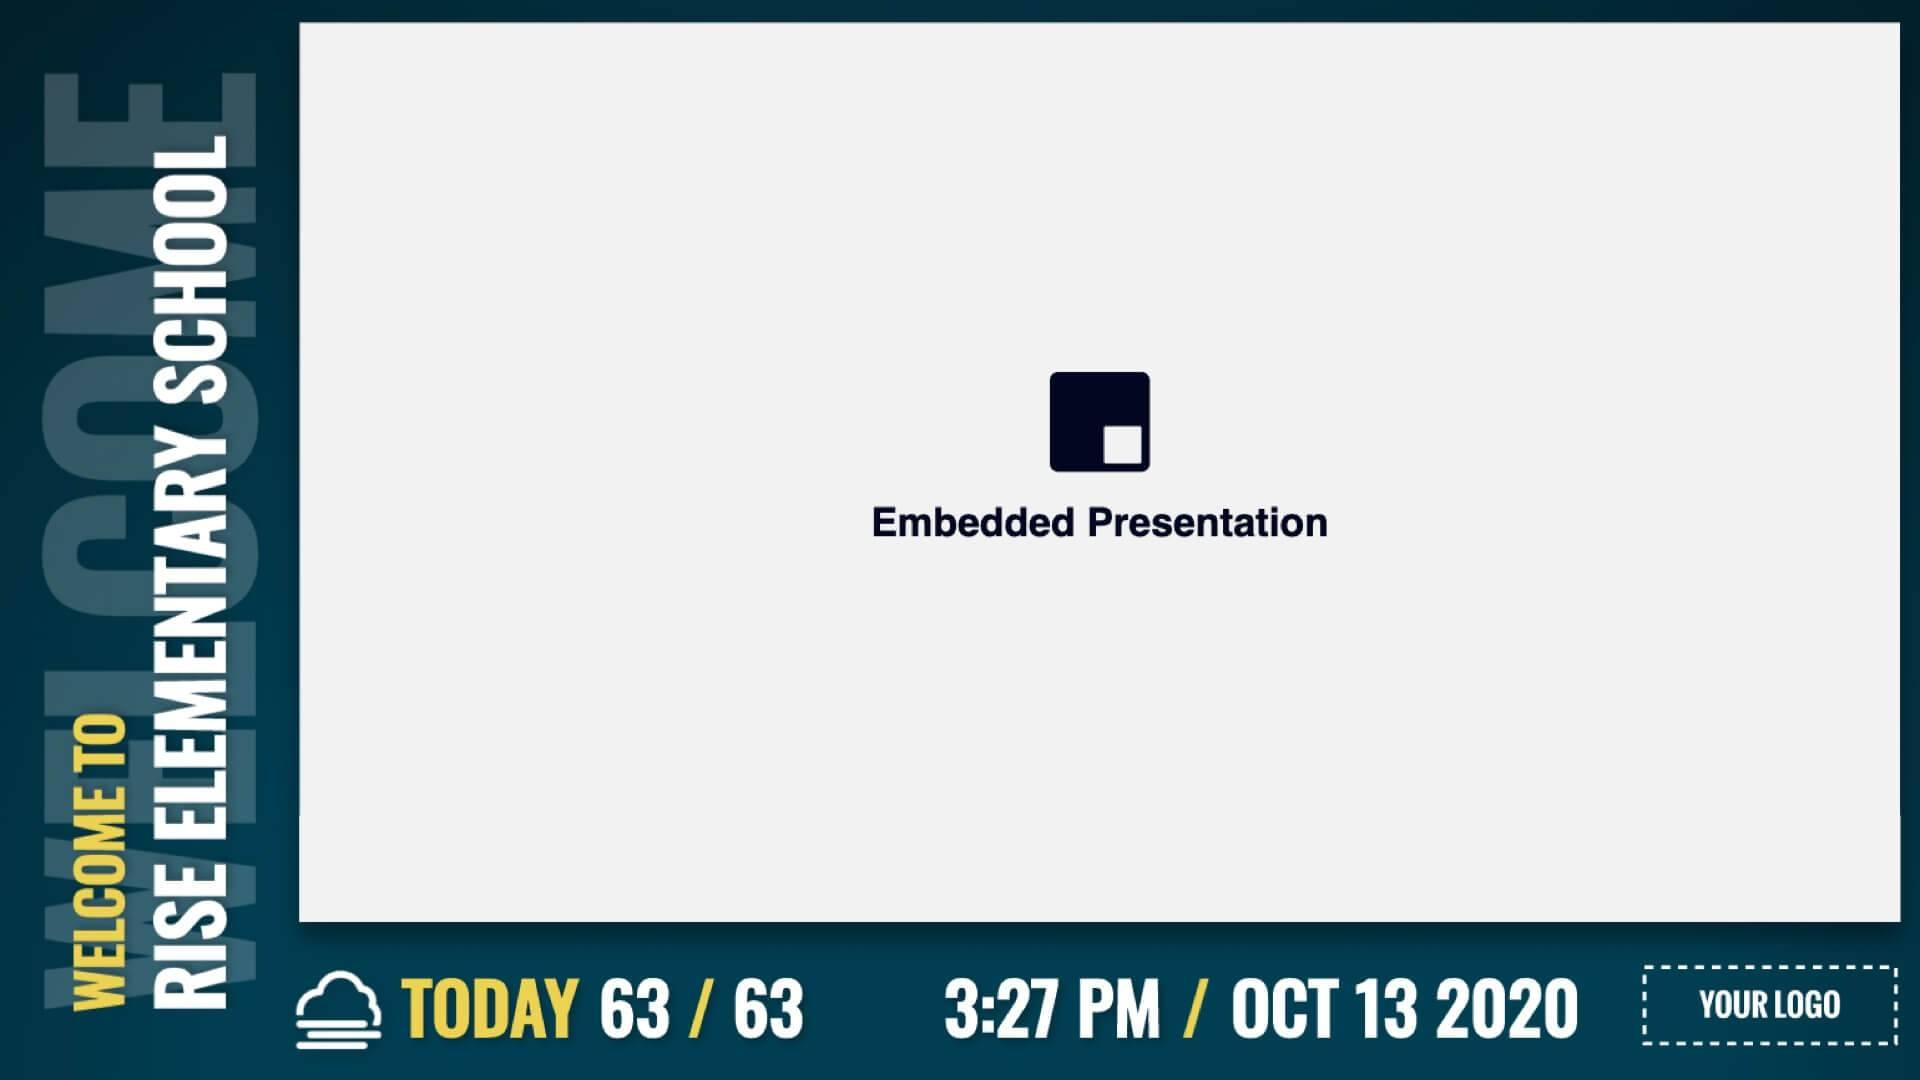 Zoned Minimal Embedded Welcome Digital Signage Template